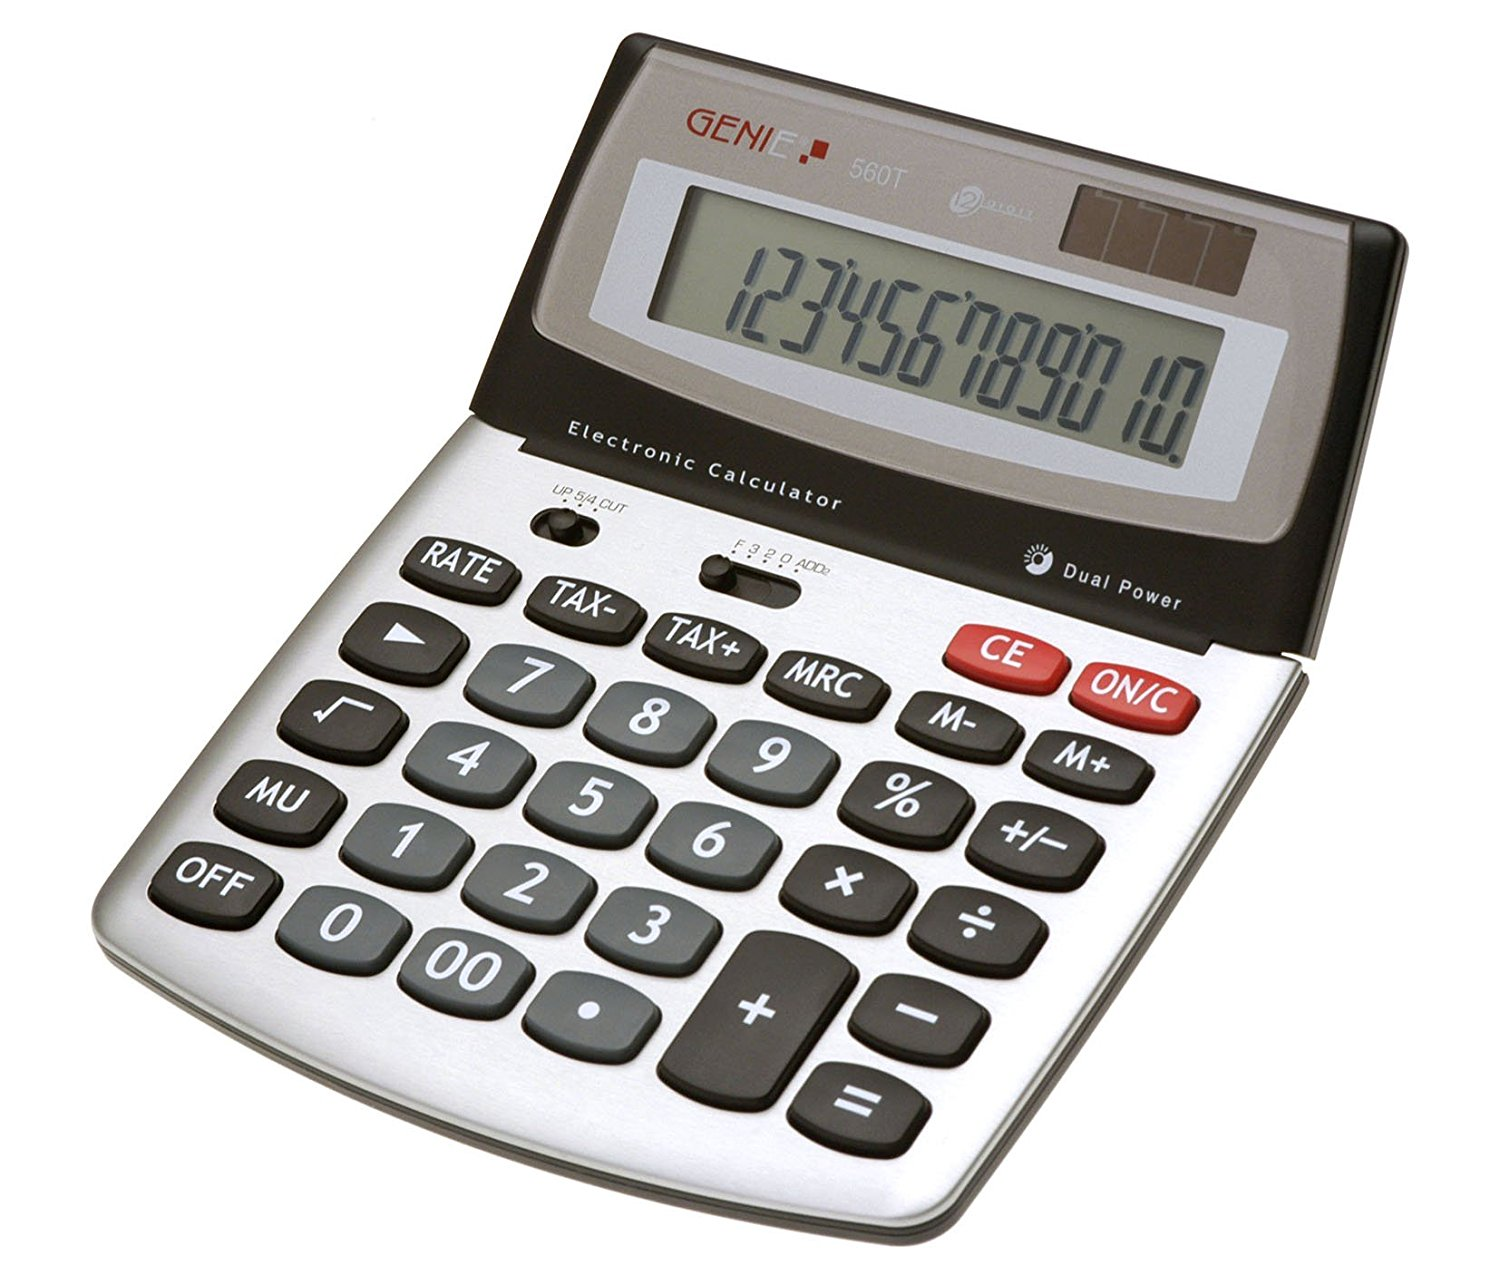 Value Genie 560T 12-digit desktop calculator 10270